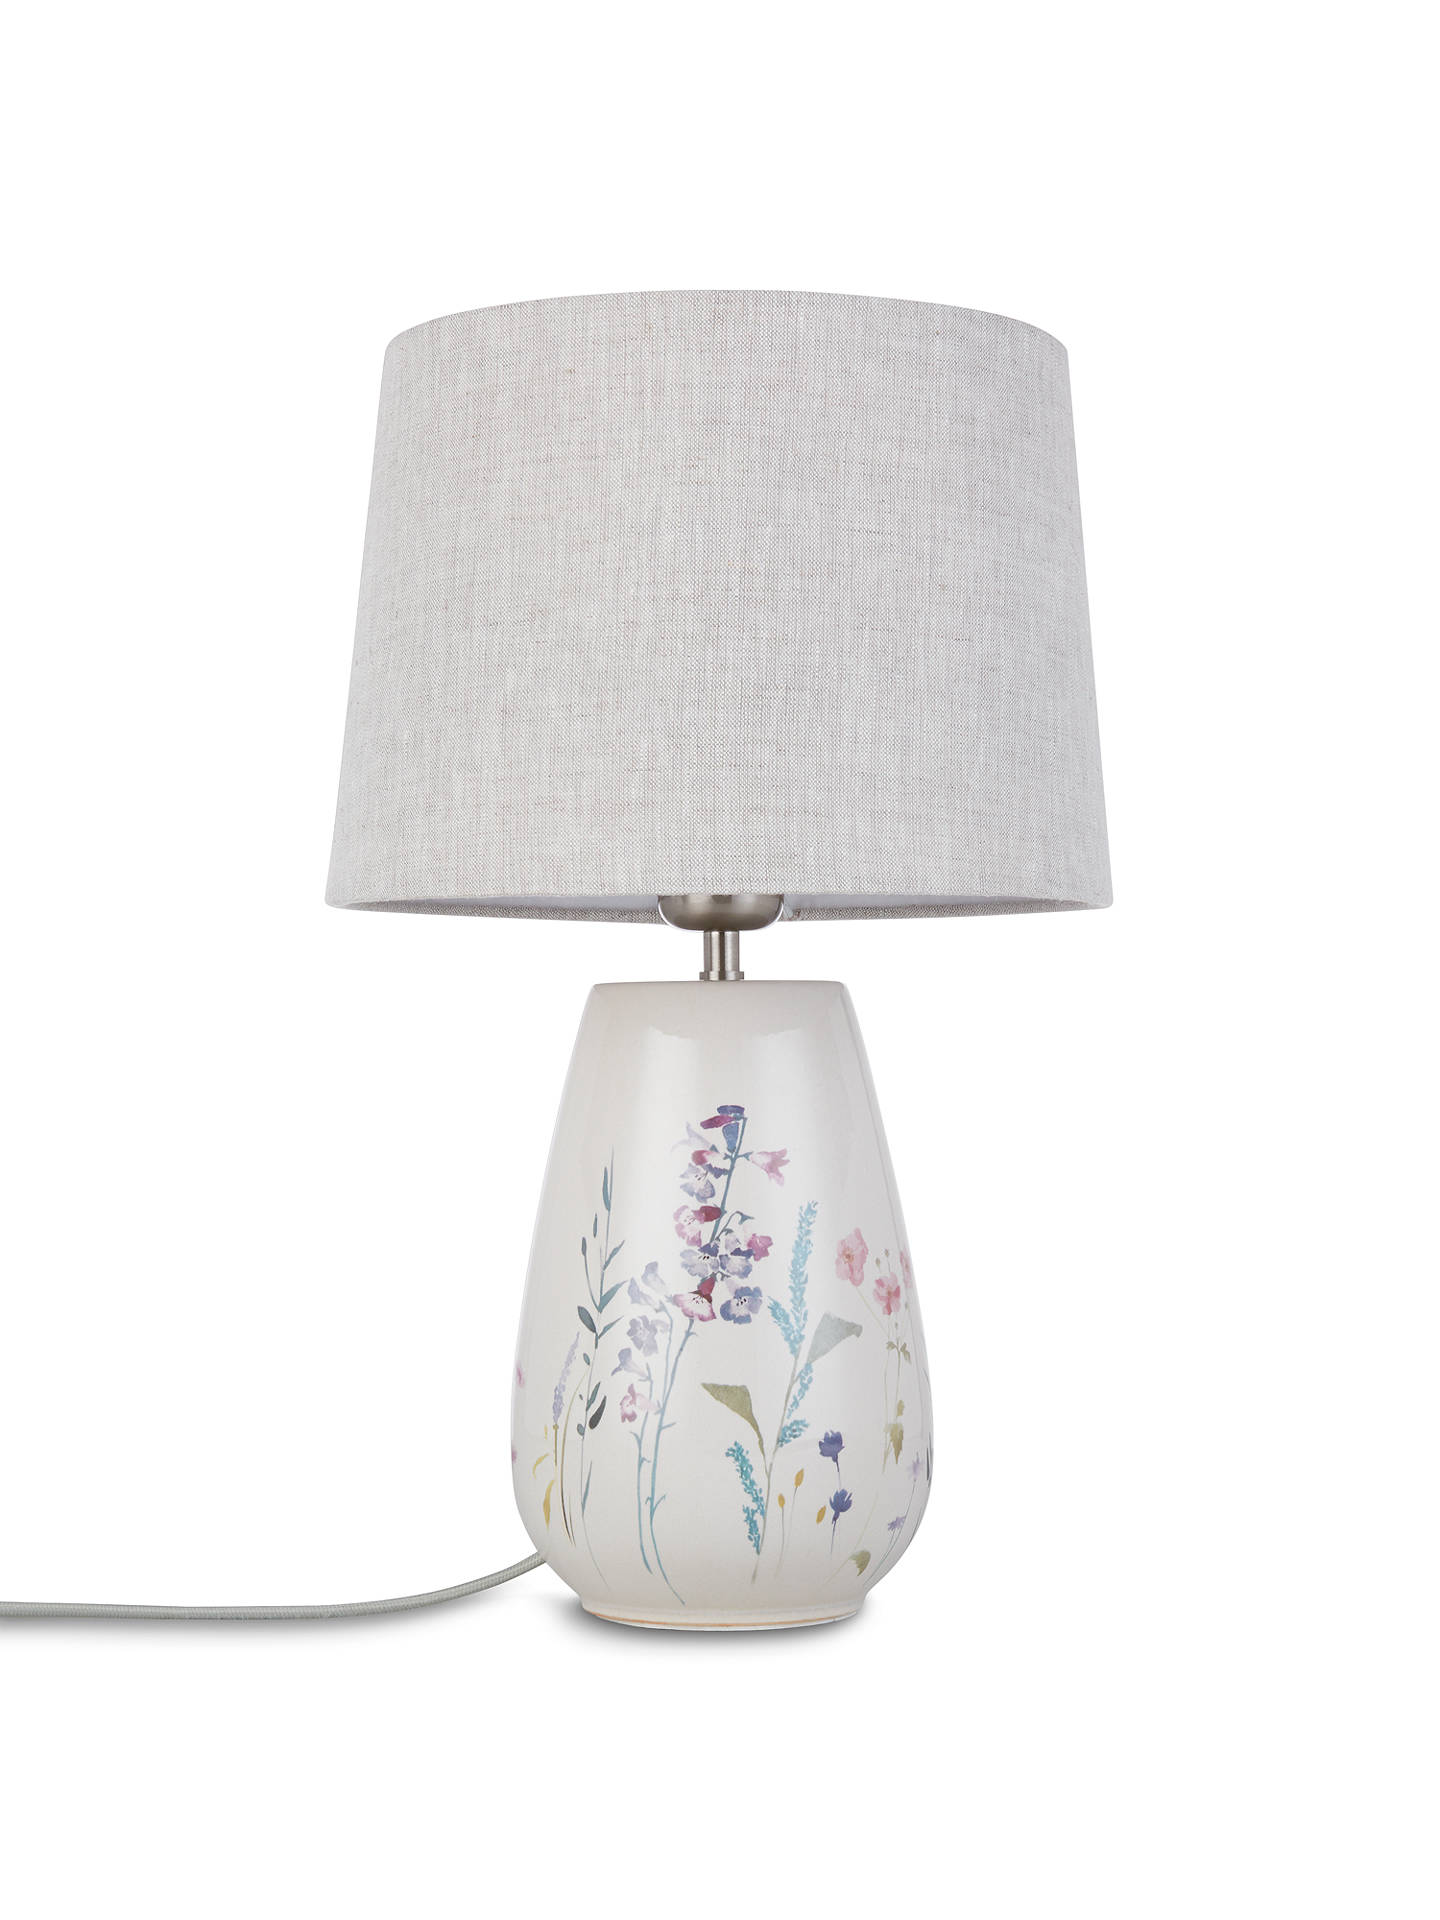 BuyJohn Lewis & Partners Longstock Print Crackle Table Lamp Online at johnlewis.com